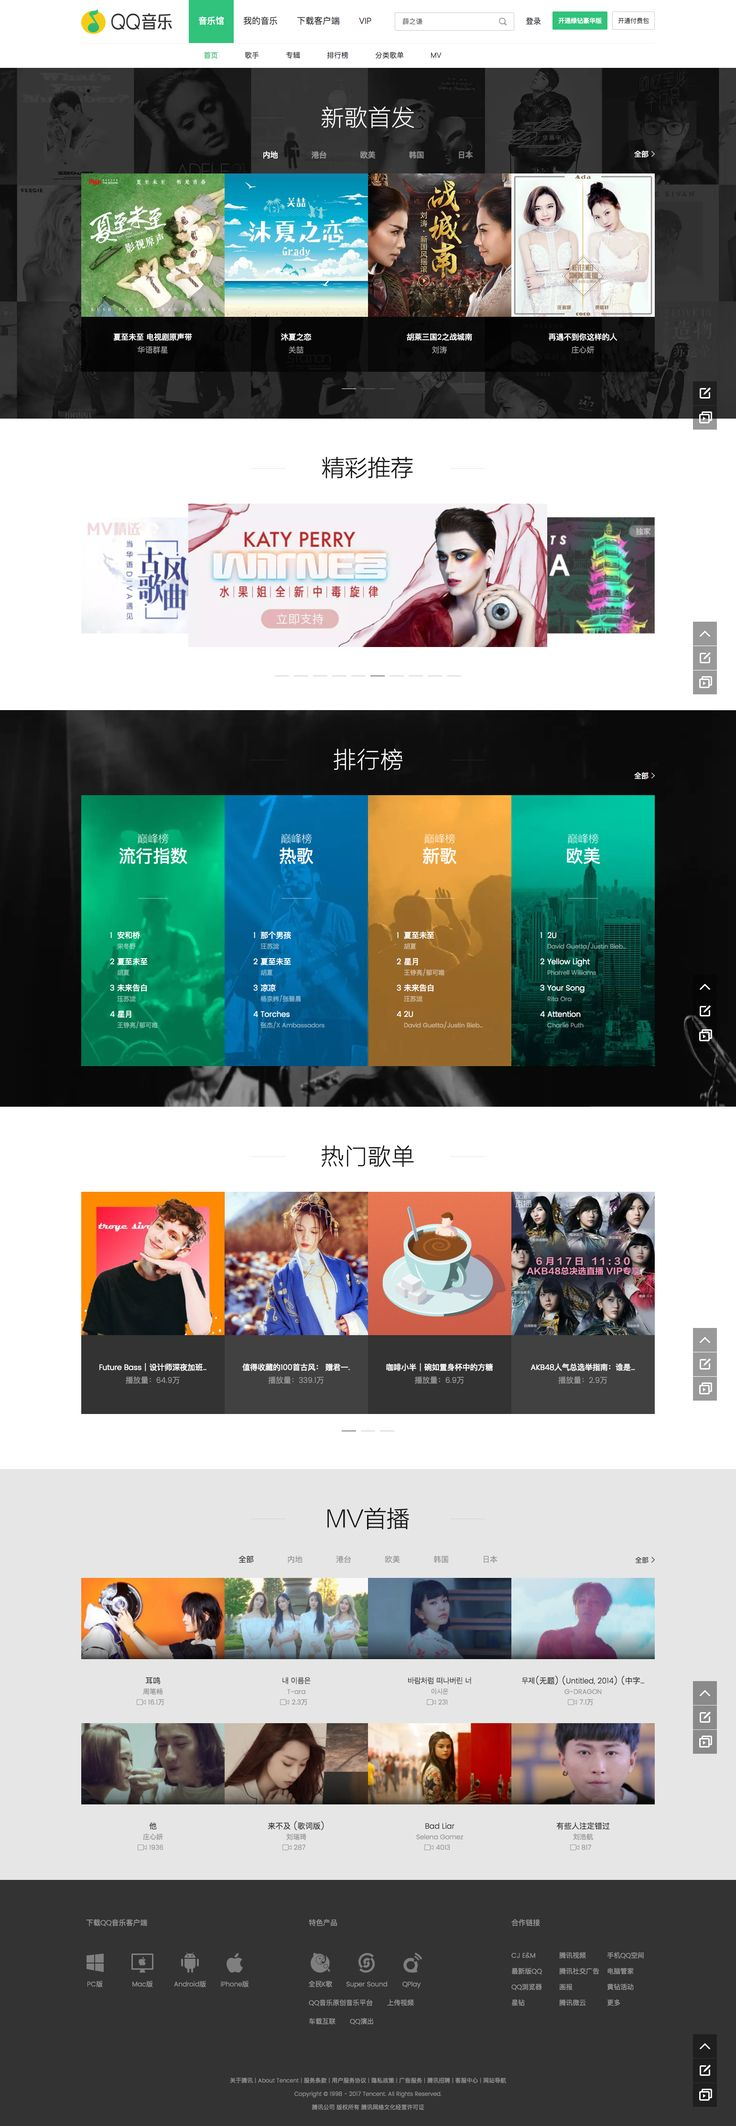 QQ Music is one of the most modern and contemporary Chinese website designs. The website is a great example and benchmark for clean, modern and easy to use Chinese web patterns and styles. We recommend using this as the benchmark for the AR China website in terms of style and layout.